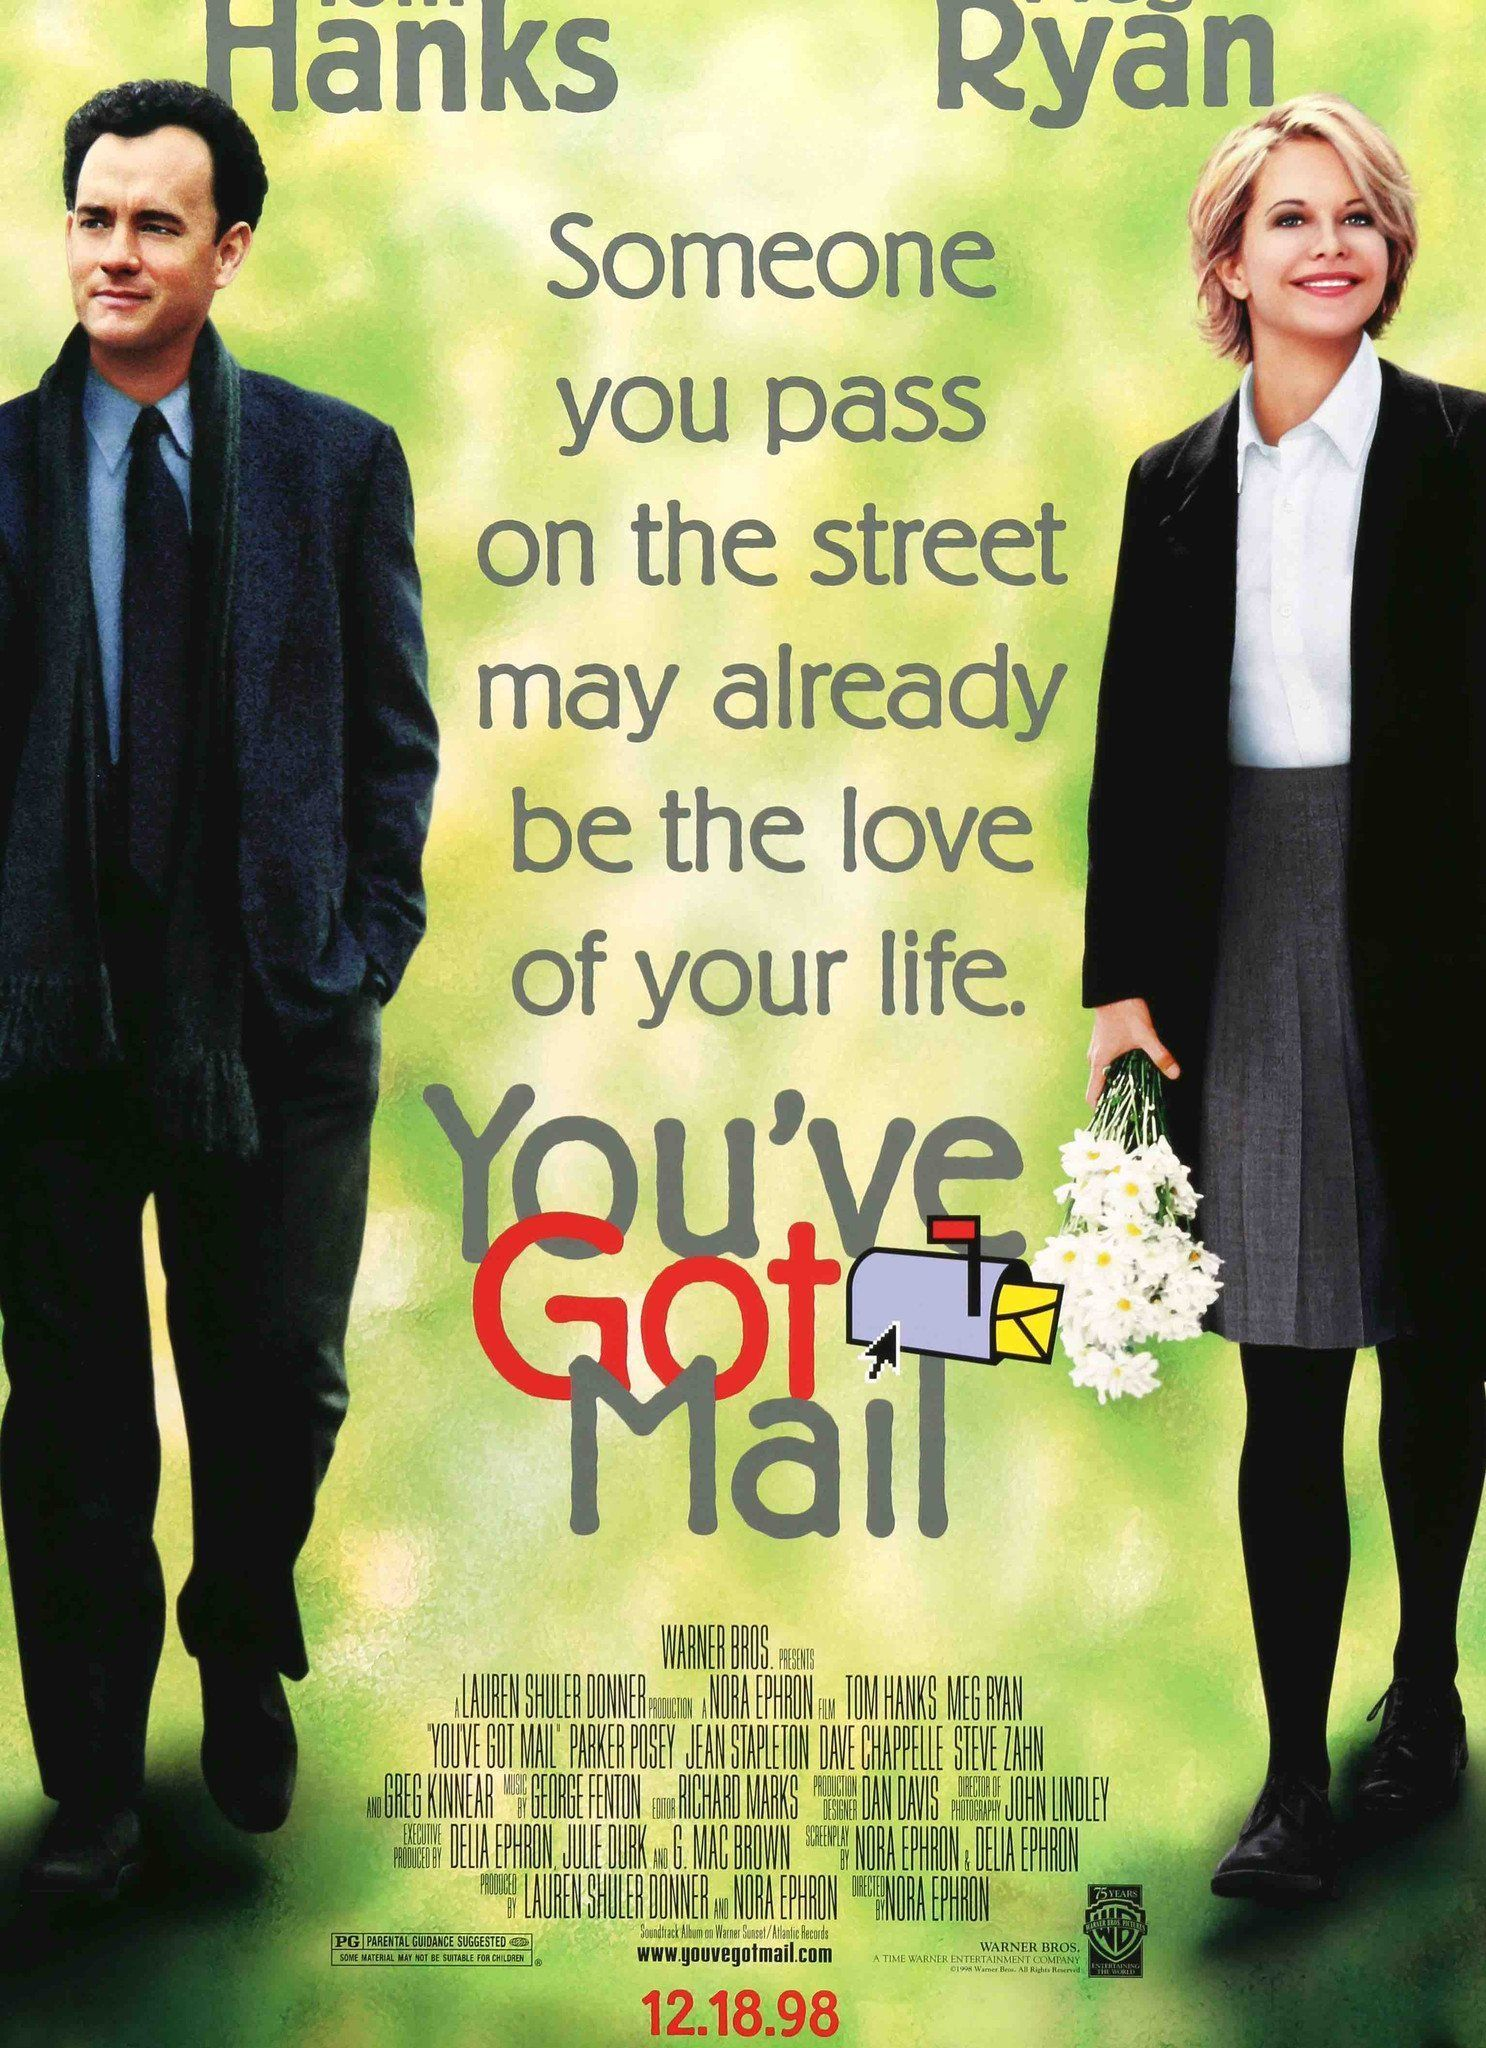 Youve Mail Gotyou Ve Got Mail 1998 You Ve Got Mail 1998 You Ve Got Mail 1998 Romantic Movies Movie Posters Movie Posters For Sale